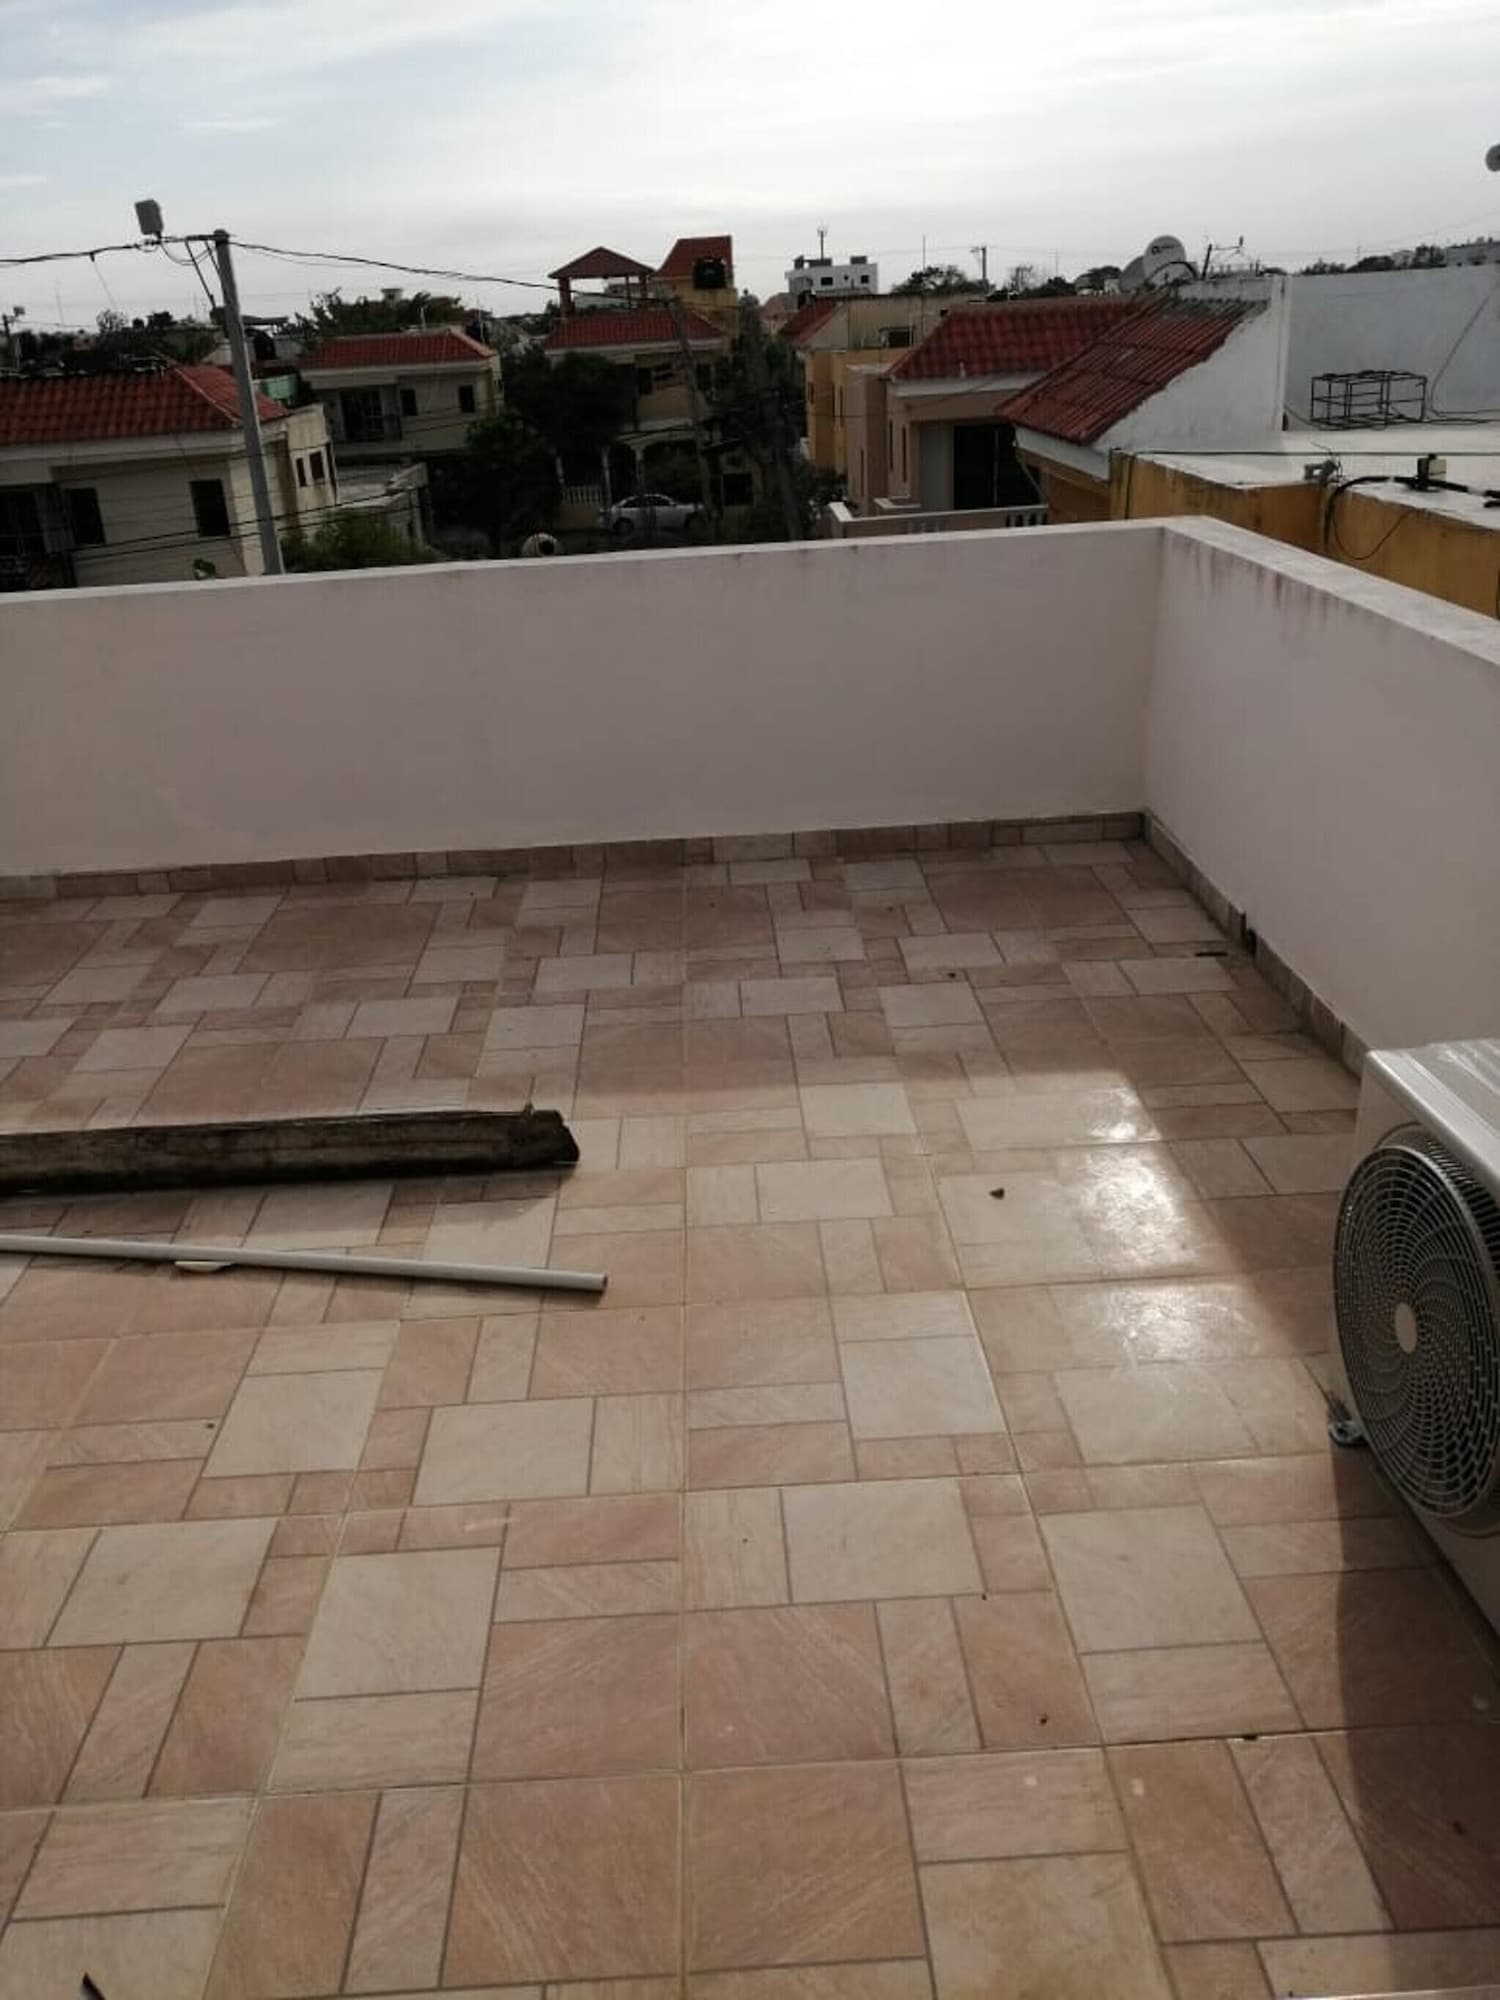 House With 3 Bedrooms in Santo Domingo, With Wonderful City View, Furnished Garden and Wifi - 26 km From the Beach, Santo Domingo Este